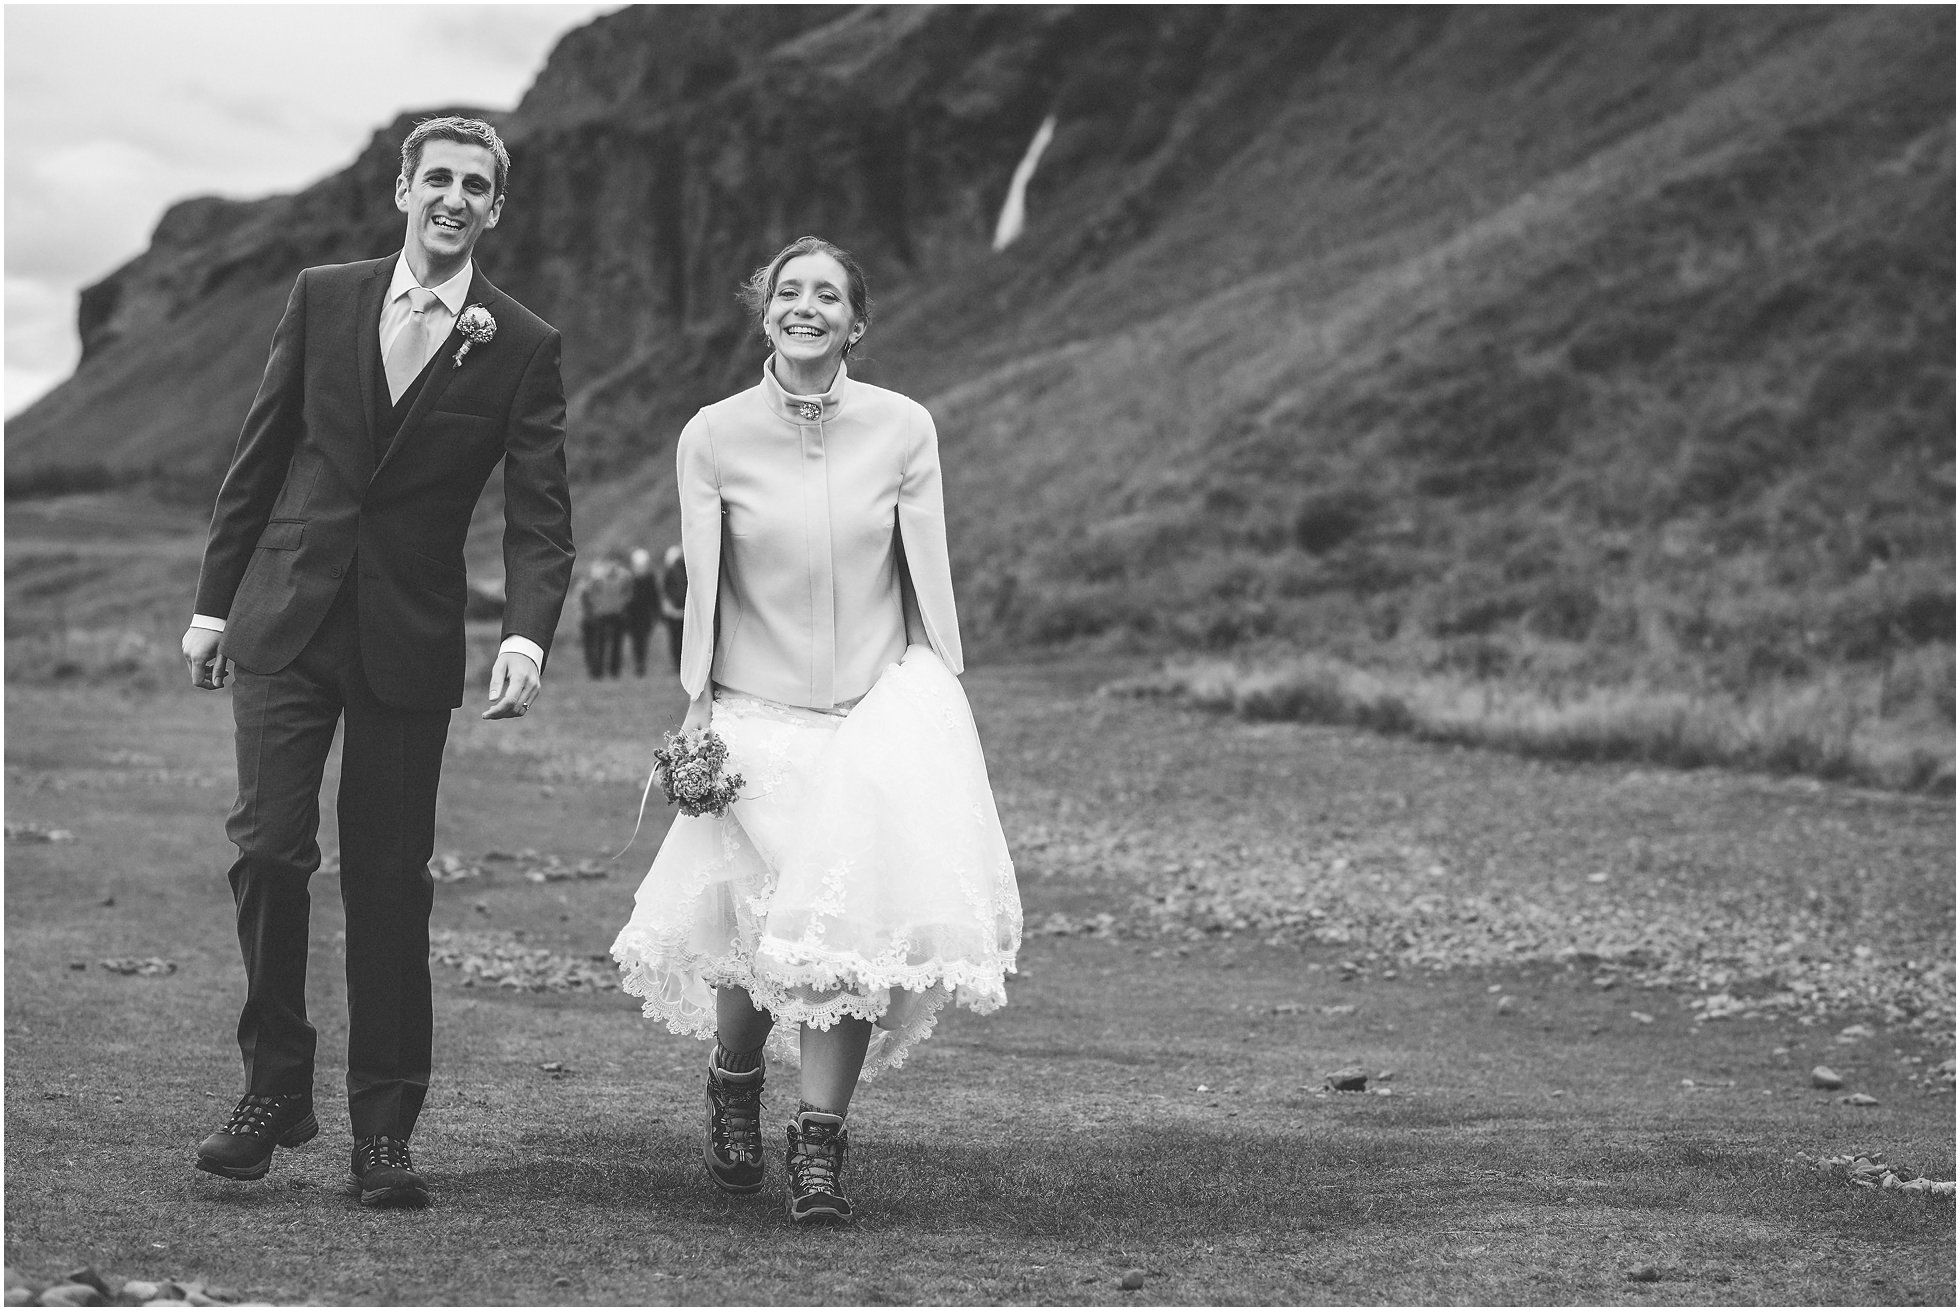 Bride and groom over the moon!